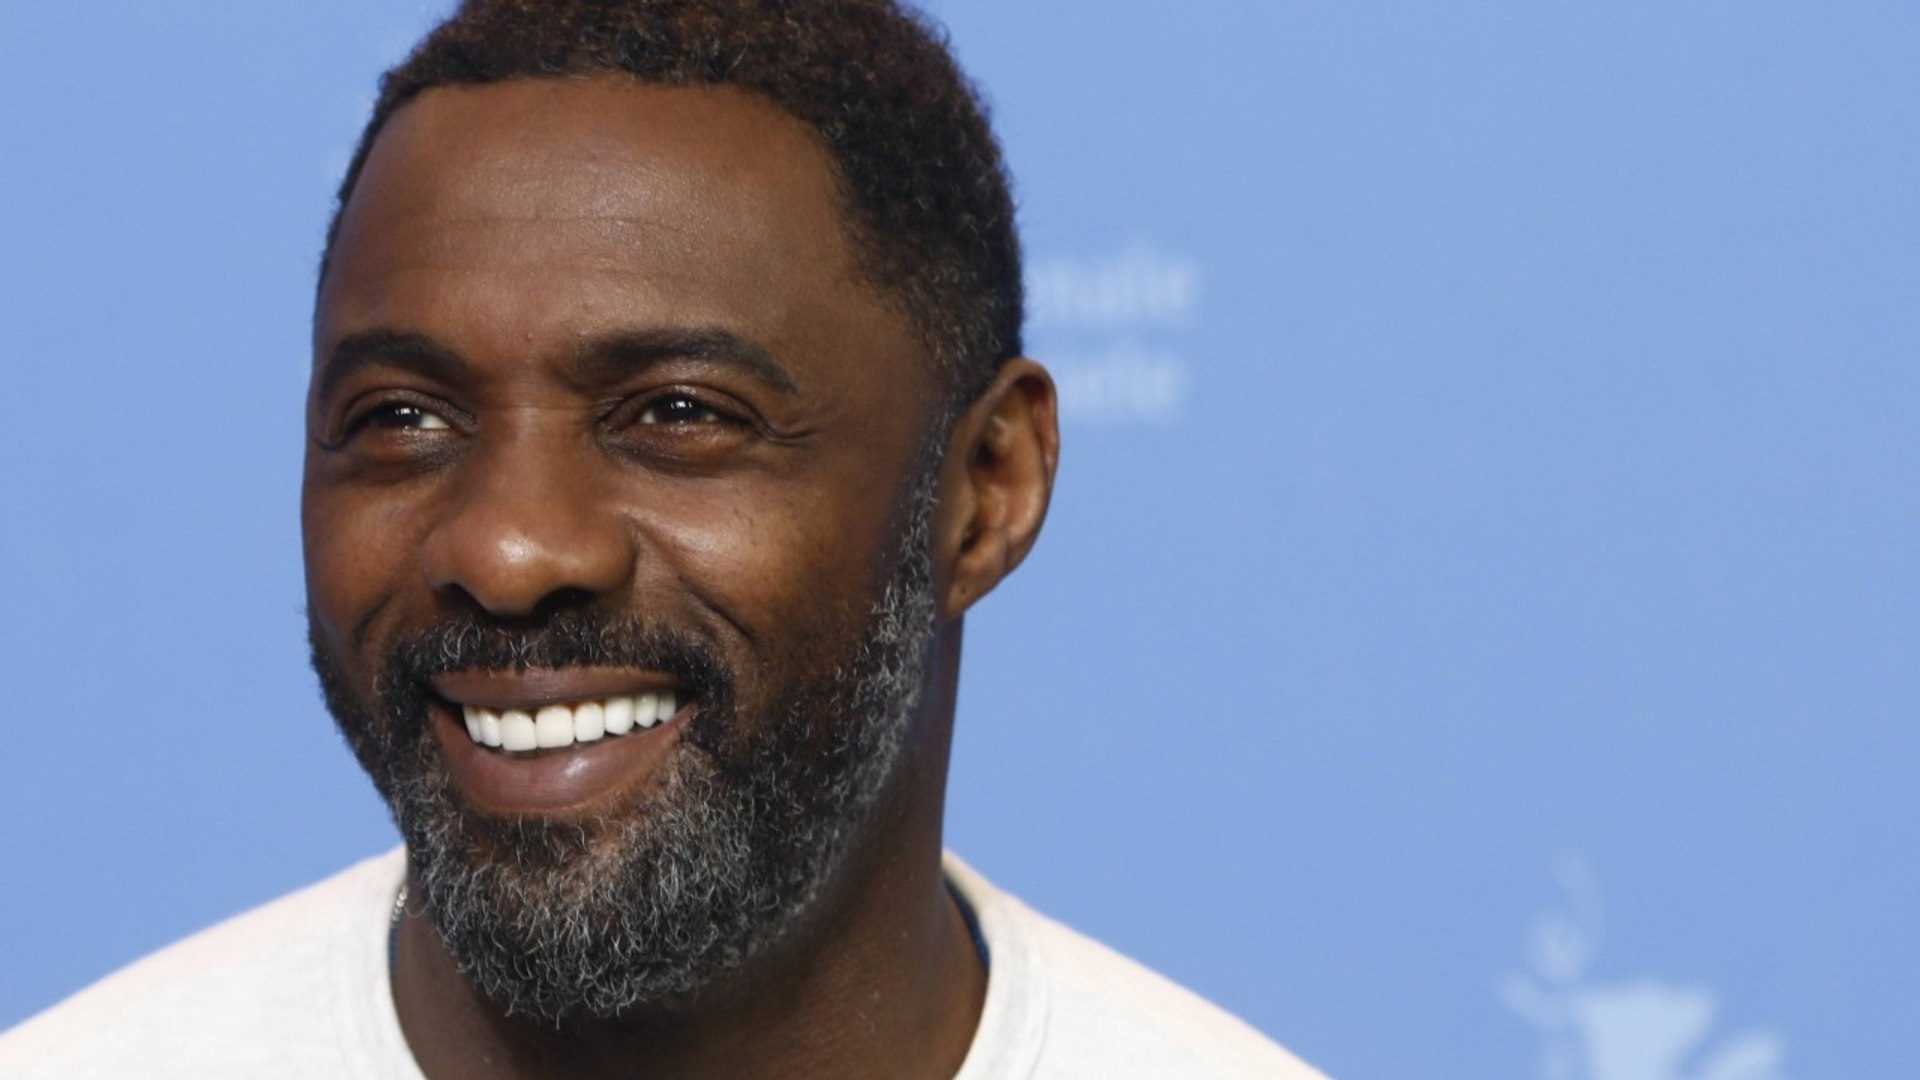 Will Idris Elba Play A Good Guy Or A Bad Guy In 'Fast And Furious' Spinoff?